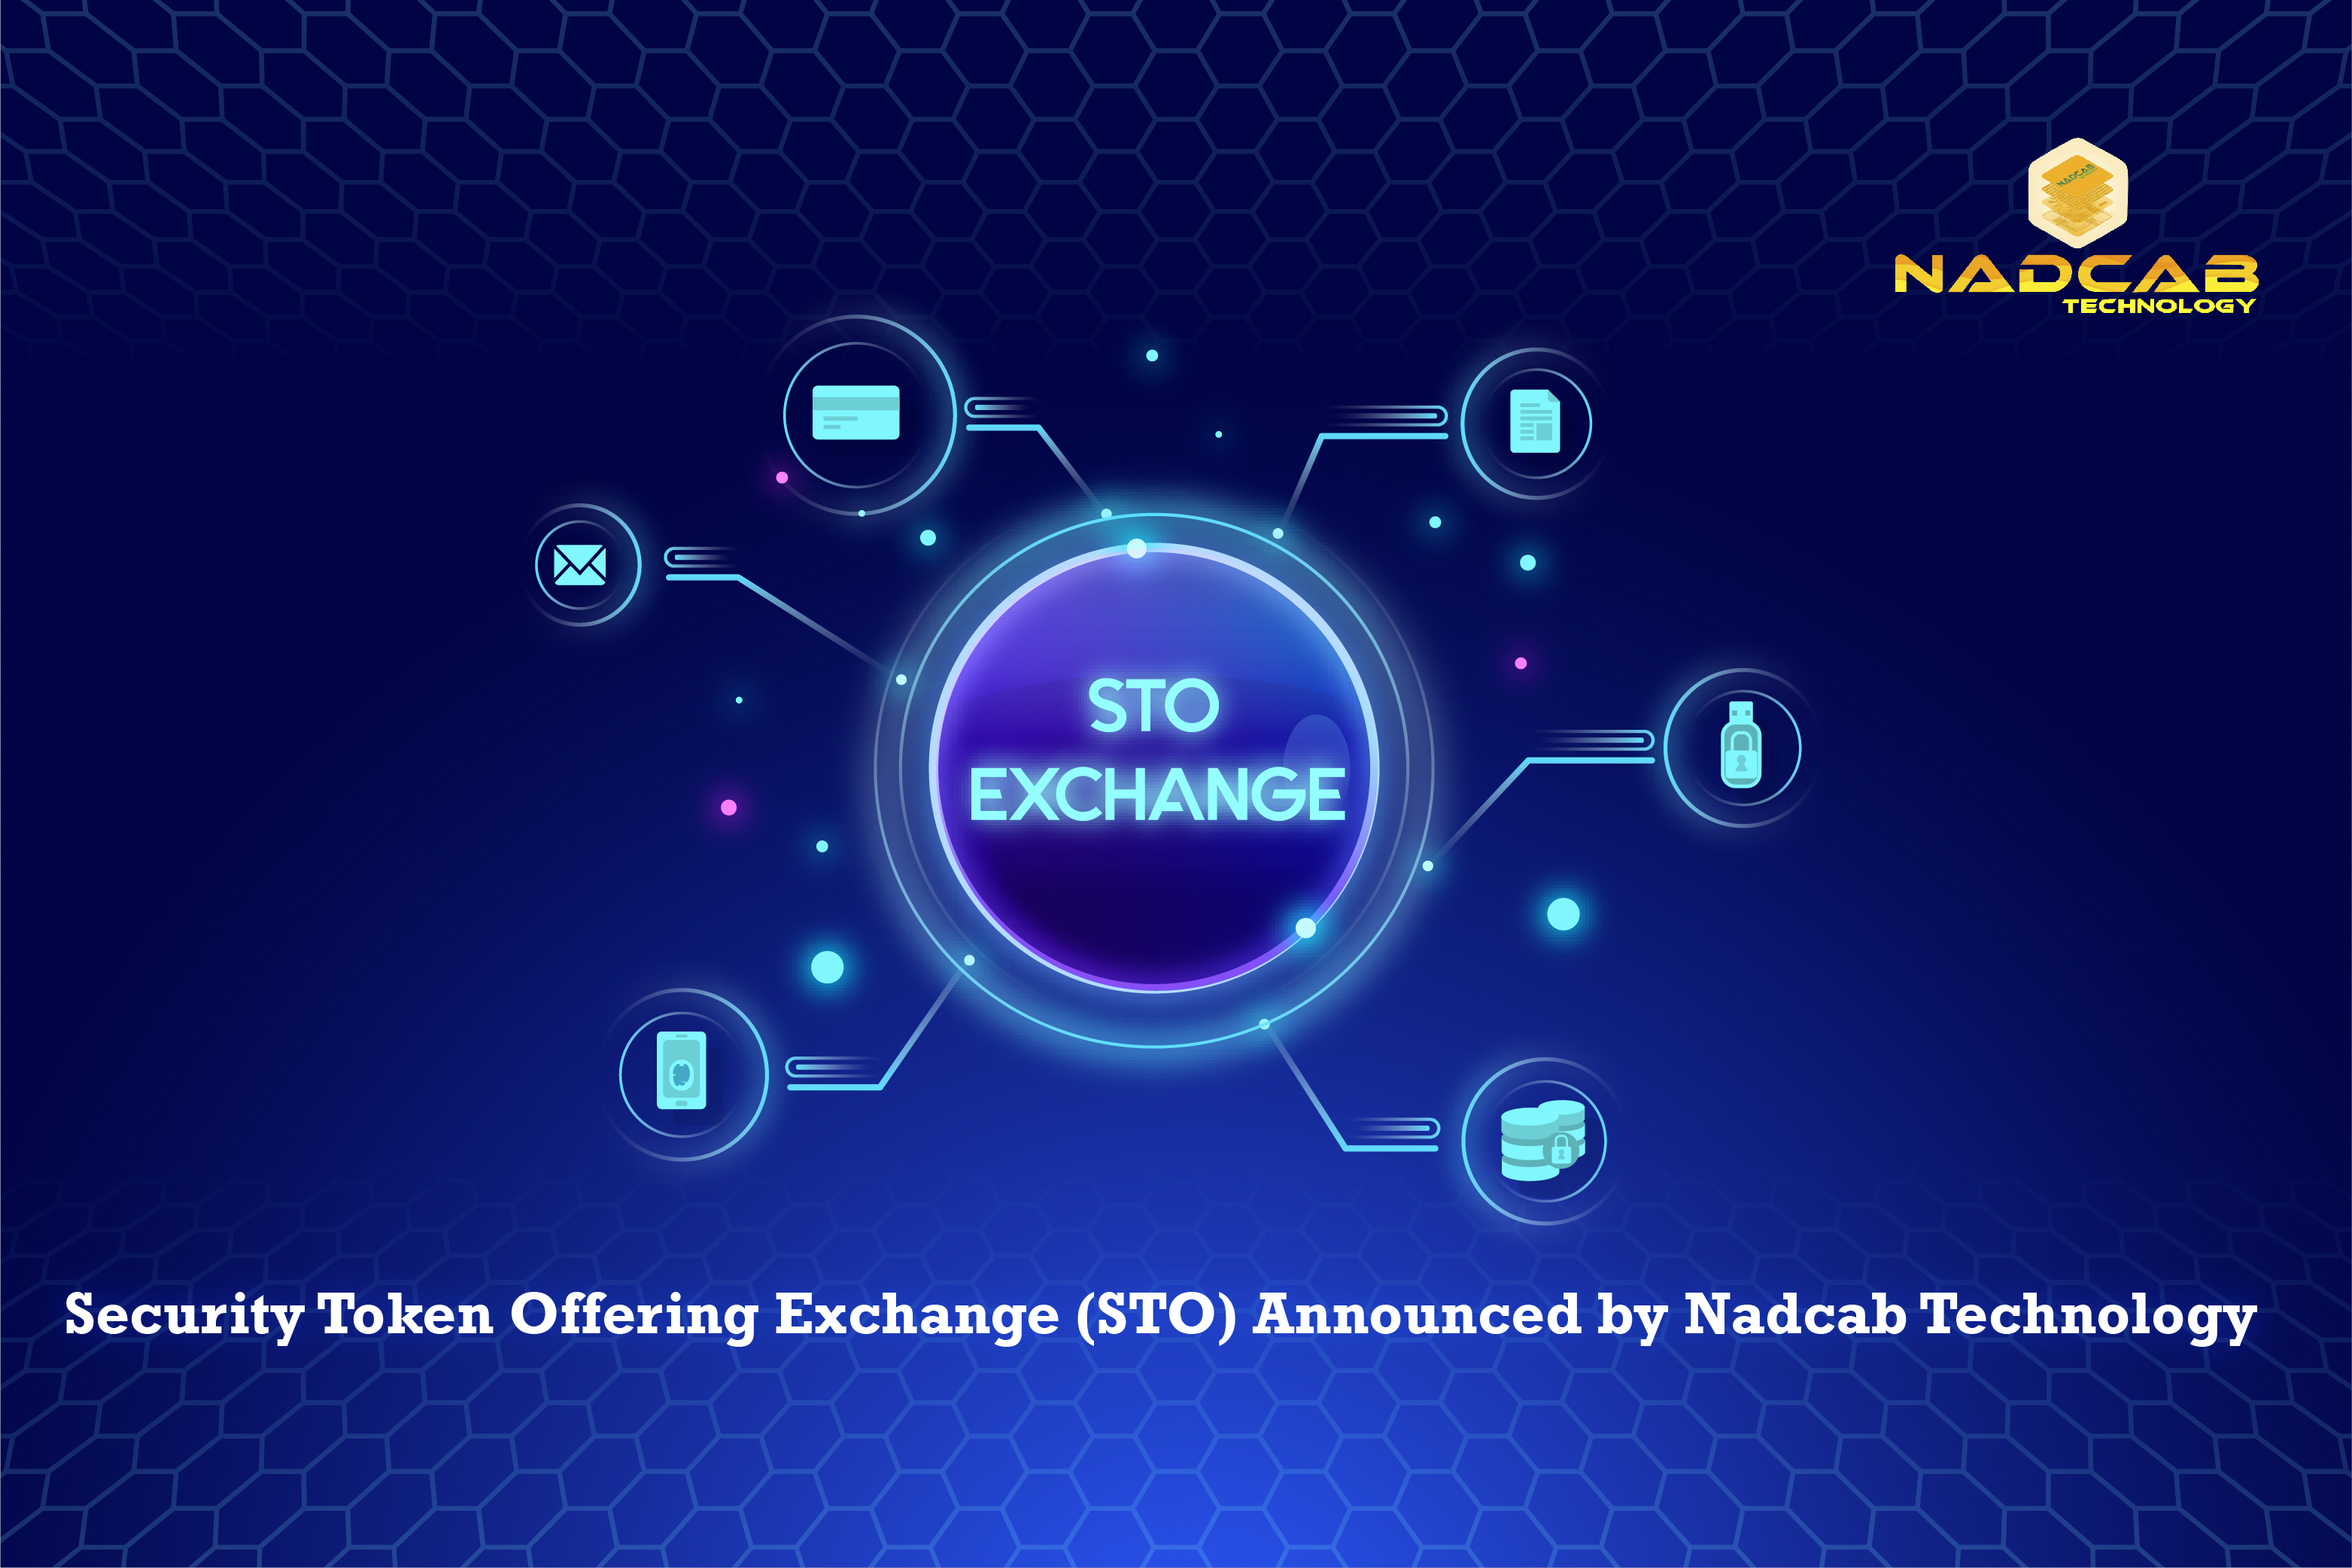 sto-exchange-announced-by-nadcab-technology